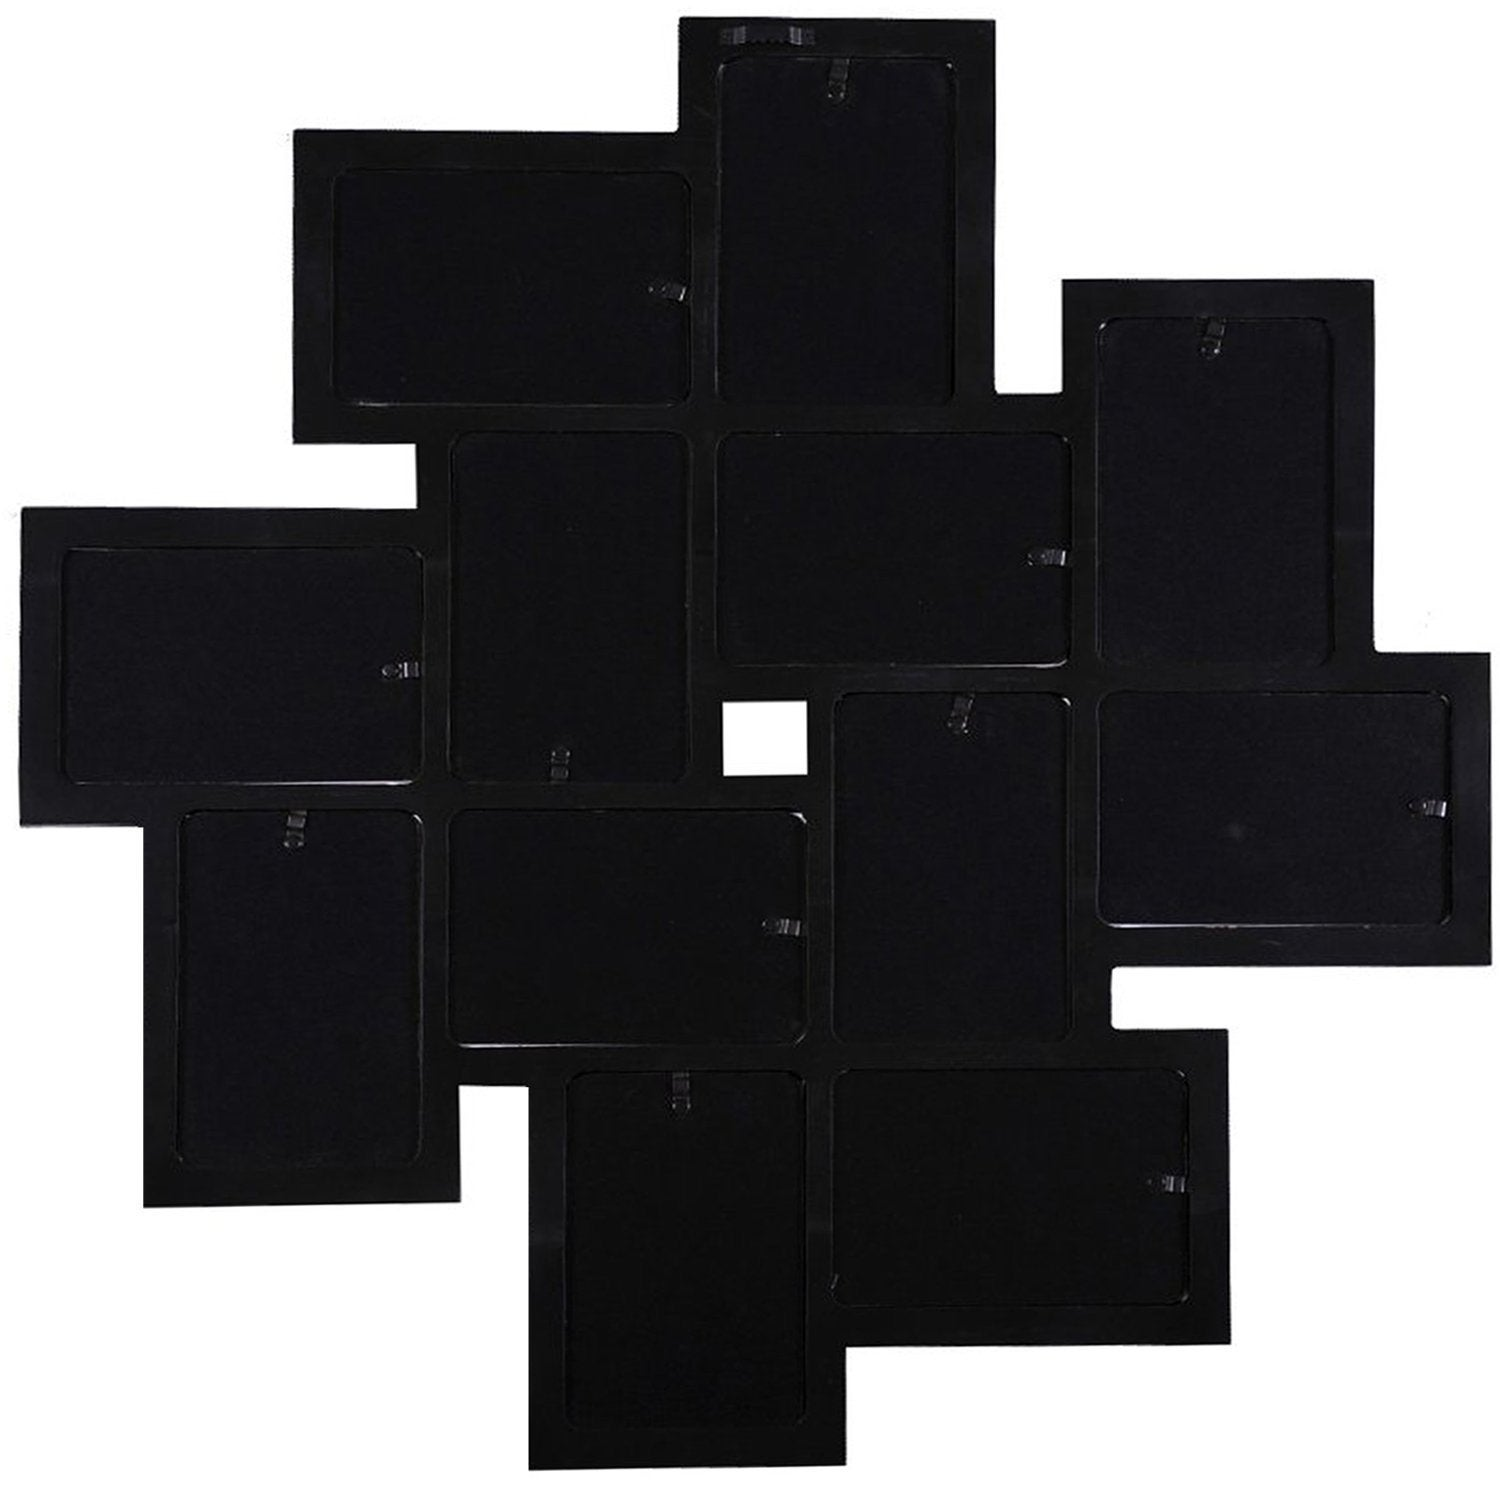 12 opening wooden wall black collage photo picture frame wall art 12 opening wooden wall black collage photo picture frame wall art free shipping today overstock 16614723 jeuxipadfo Gallery